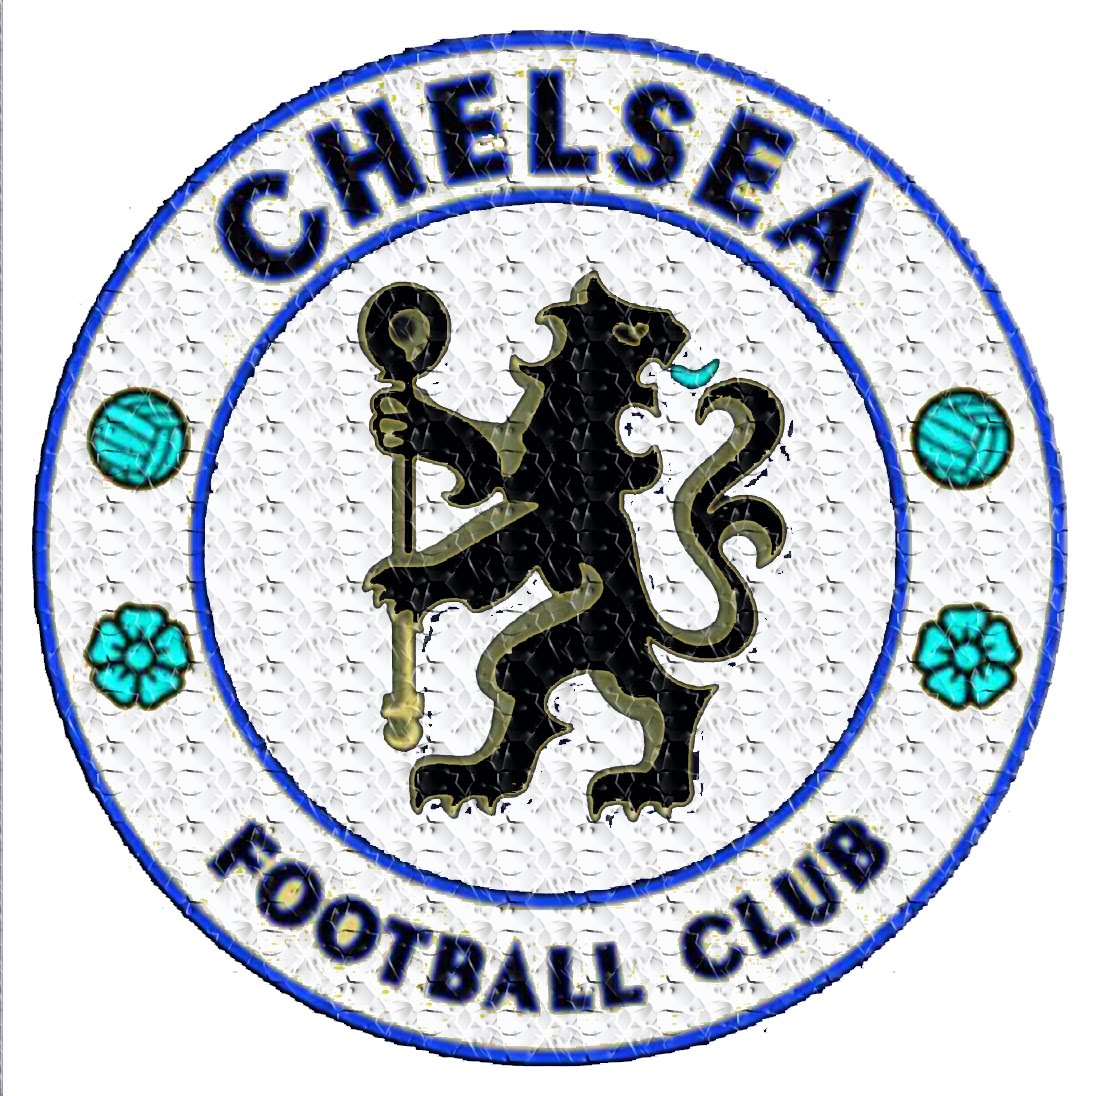 Chelsea Logo Vector Free Download Chelsea fc Logo Download